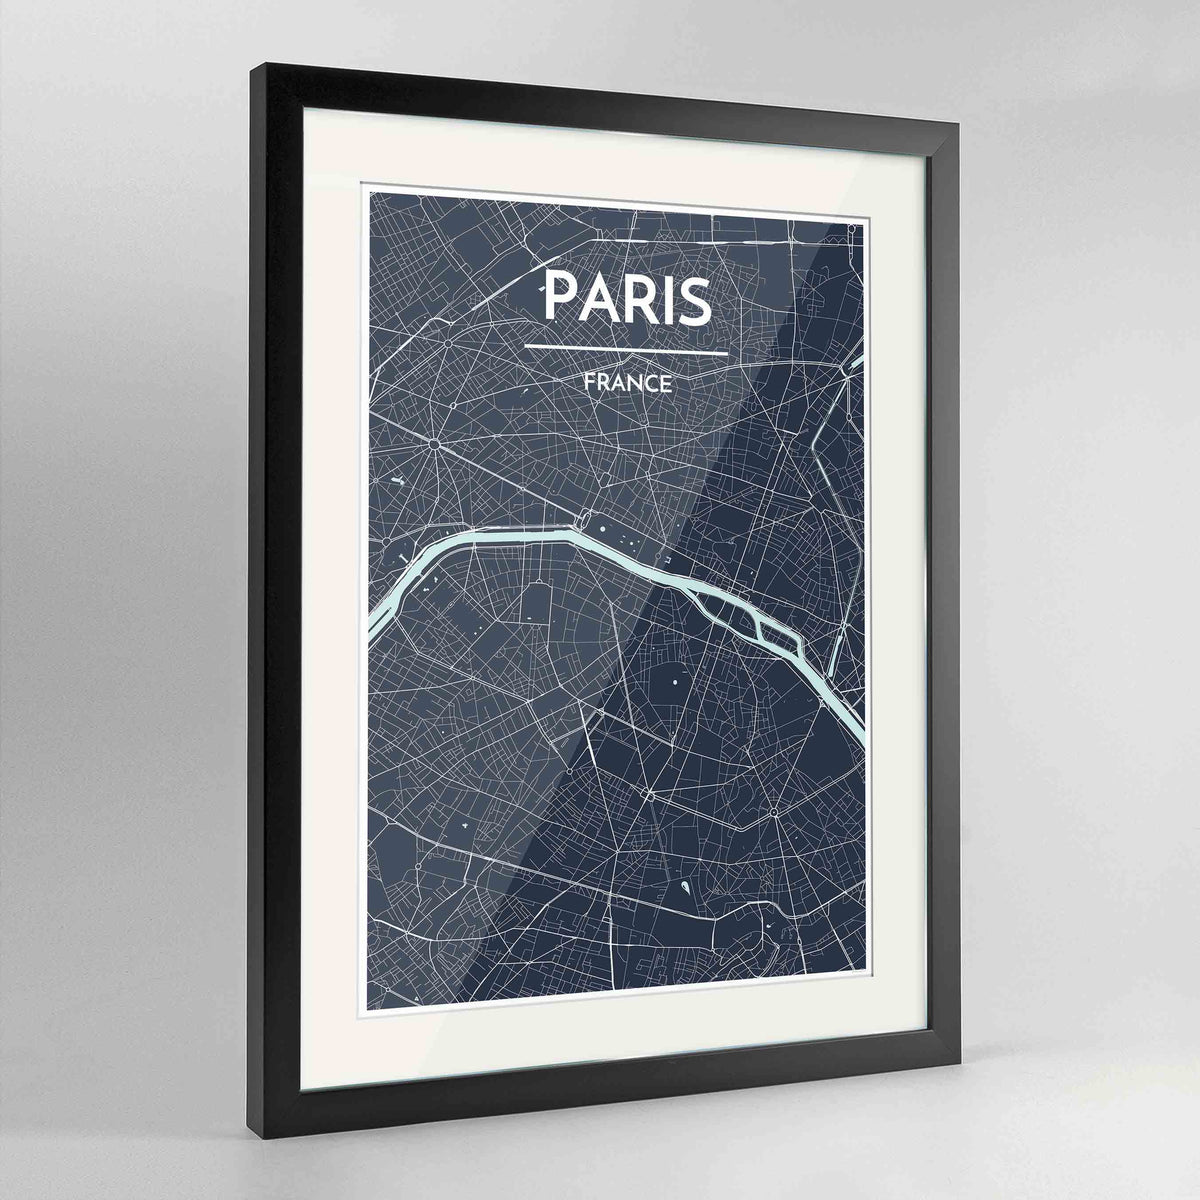 "Framed Paris Map Art Print 24x36"" Contemporary Black frame Point Two Design Group"